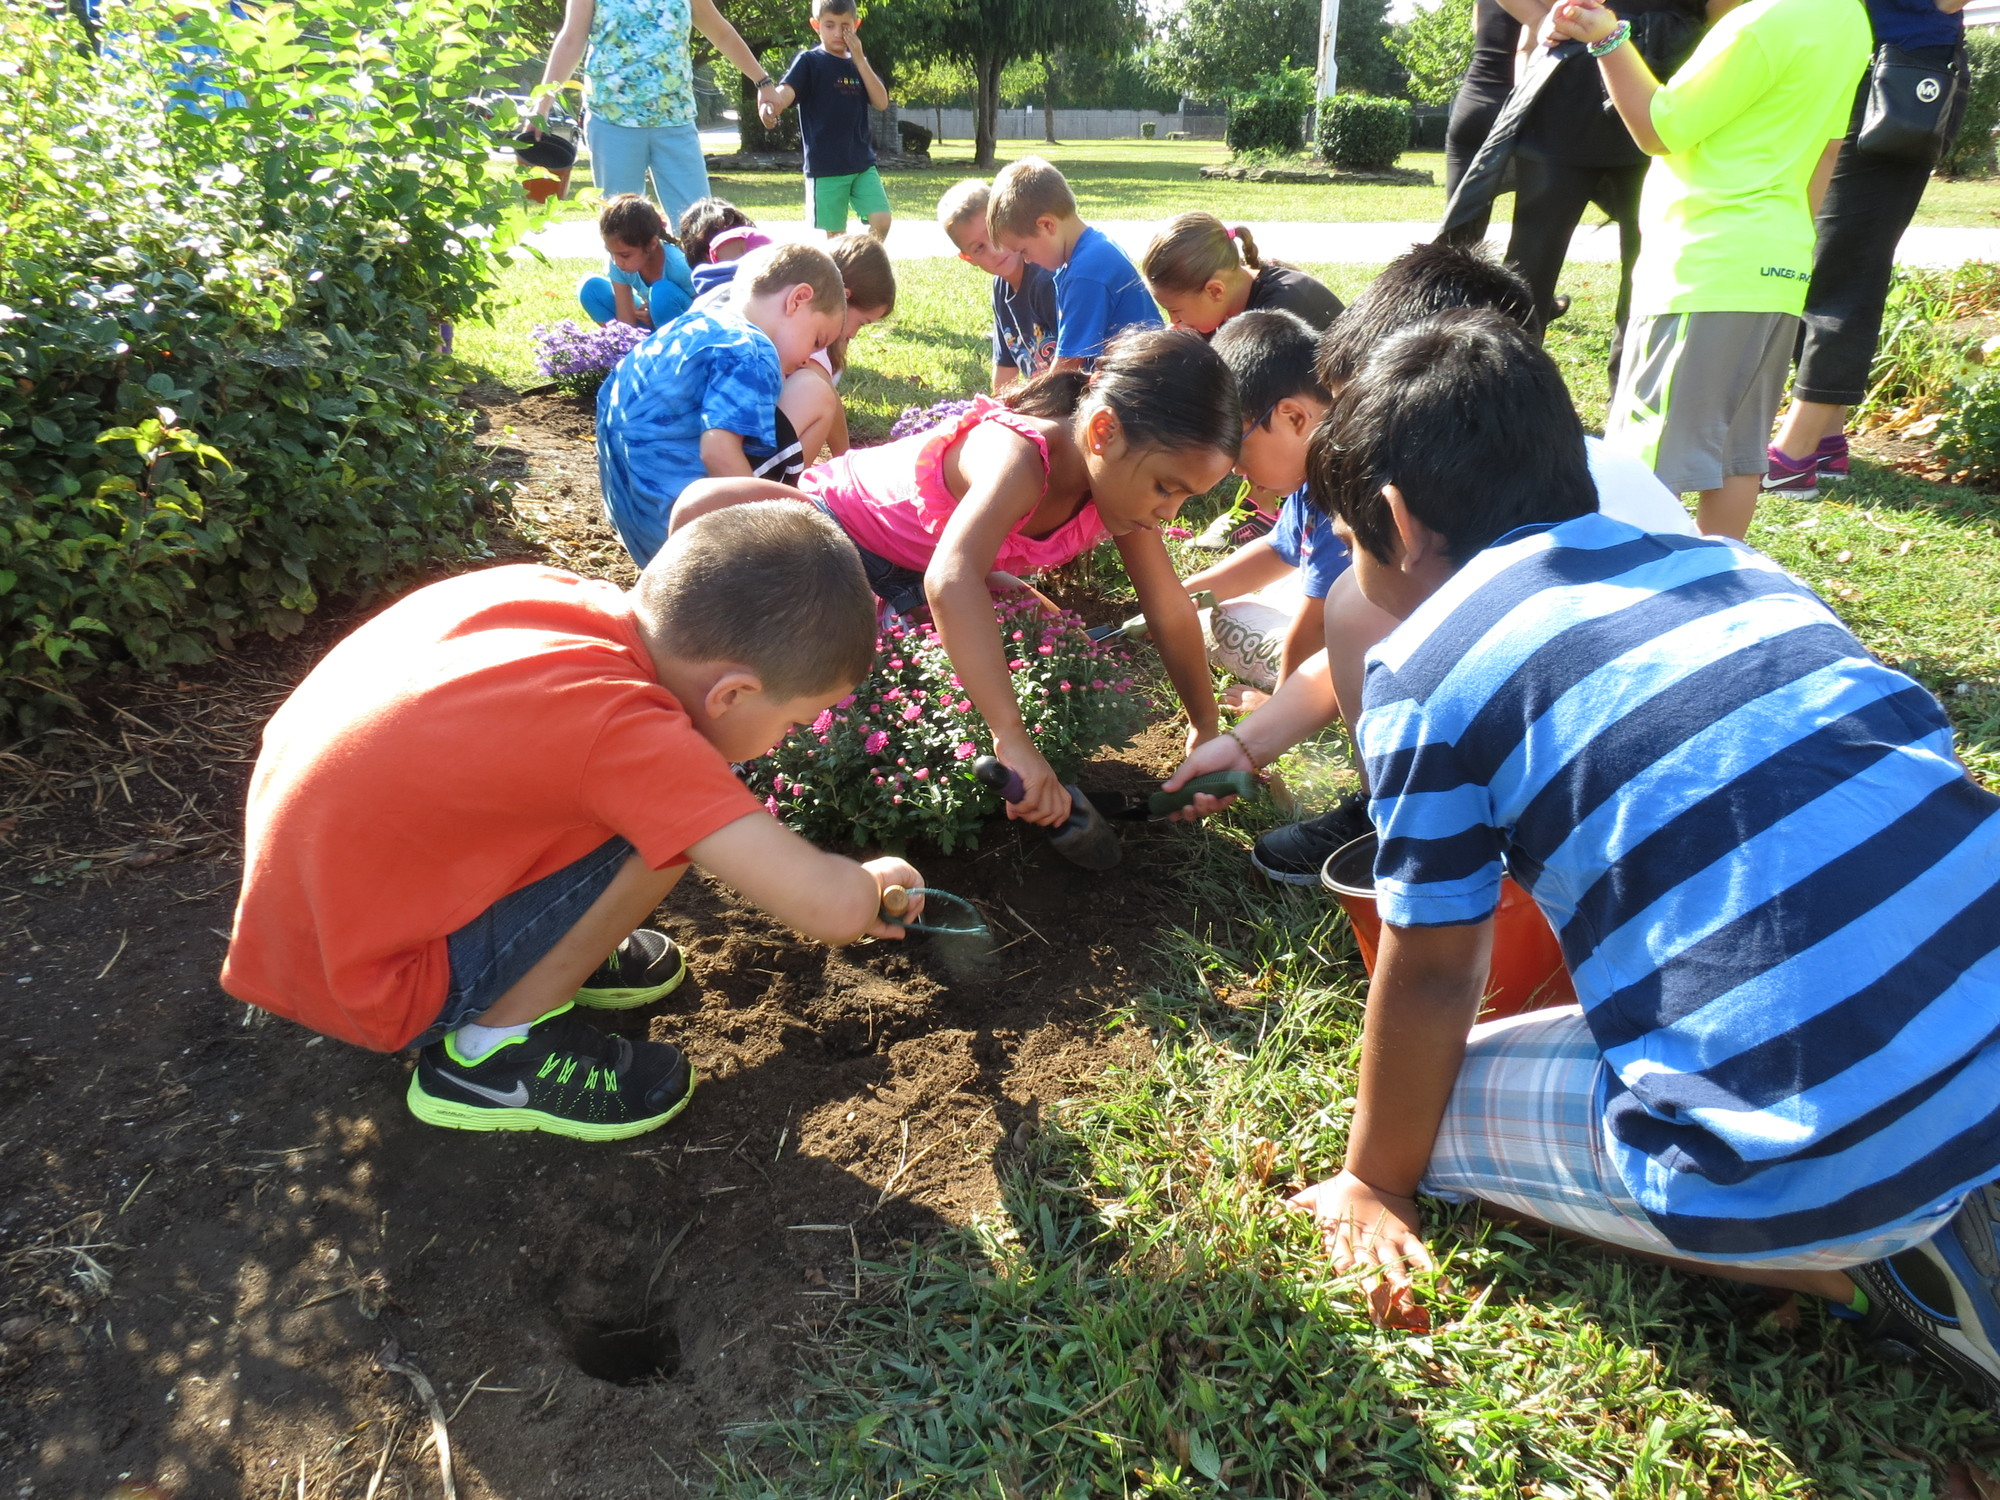 Second-graders at Meadowbrook Elementary School dug deep into the earth with miniature shovels to plant new flowers during the school